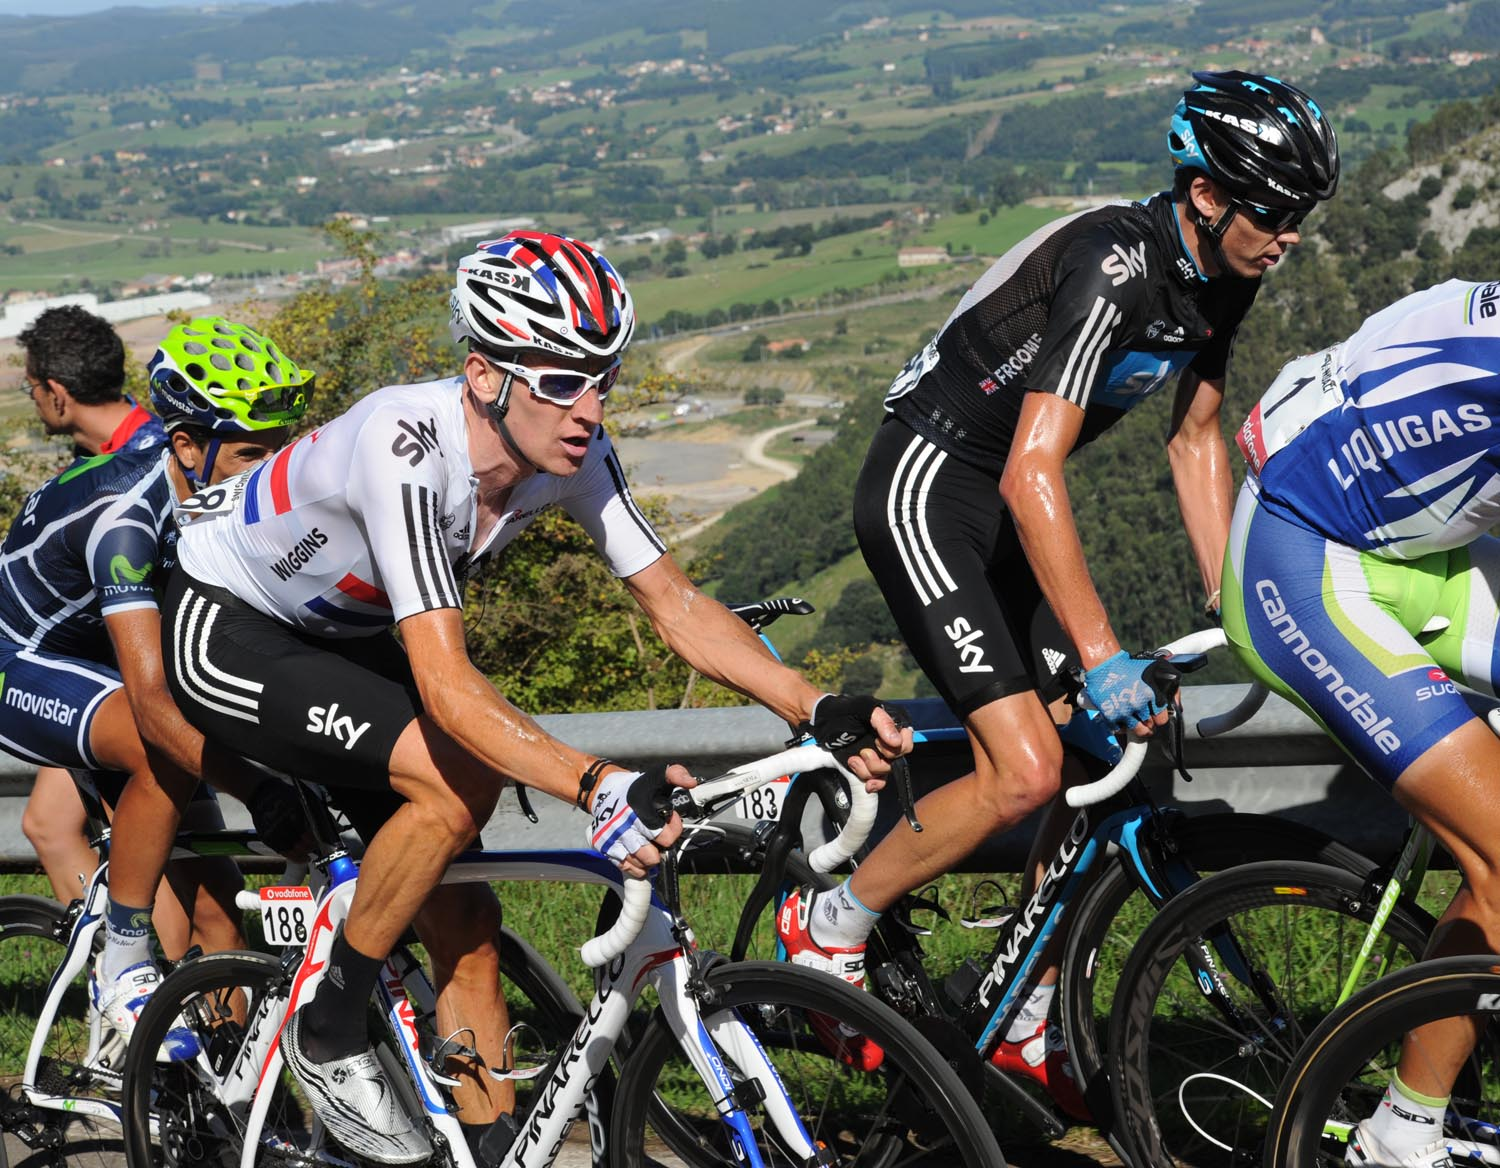 Wiggins and Froome make season debut in Algarve - Cycling Weekly